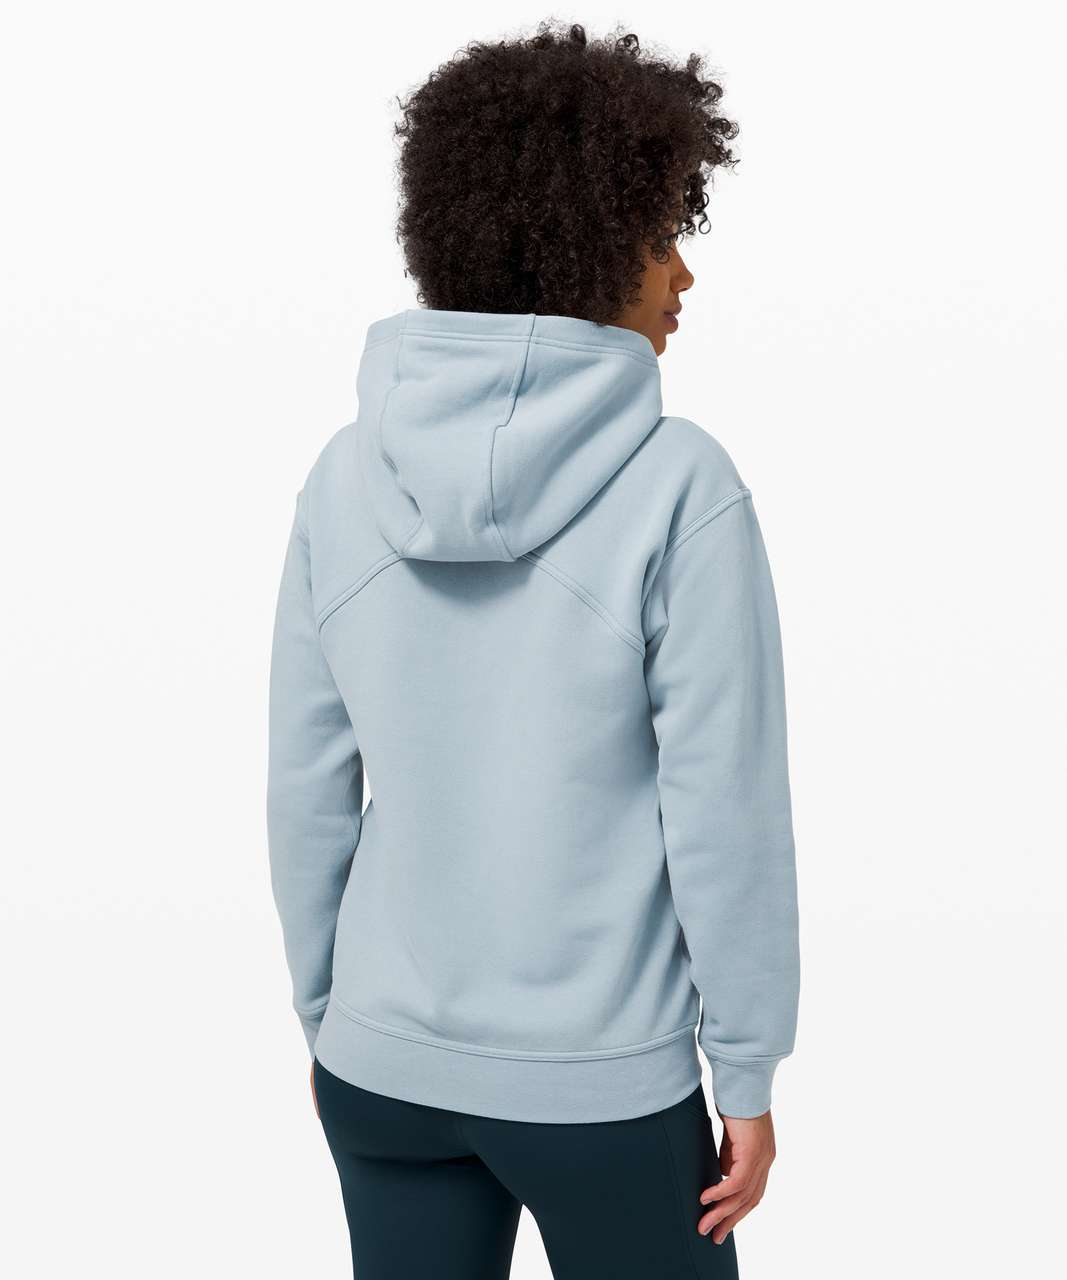 Lululemon All Yours Hoodie *Graphic - Chambray